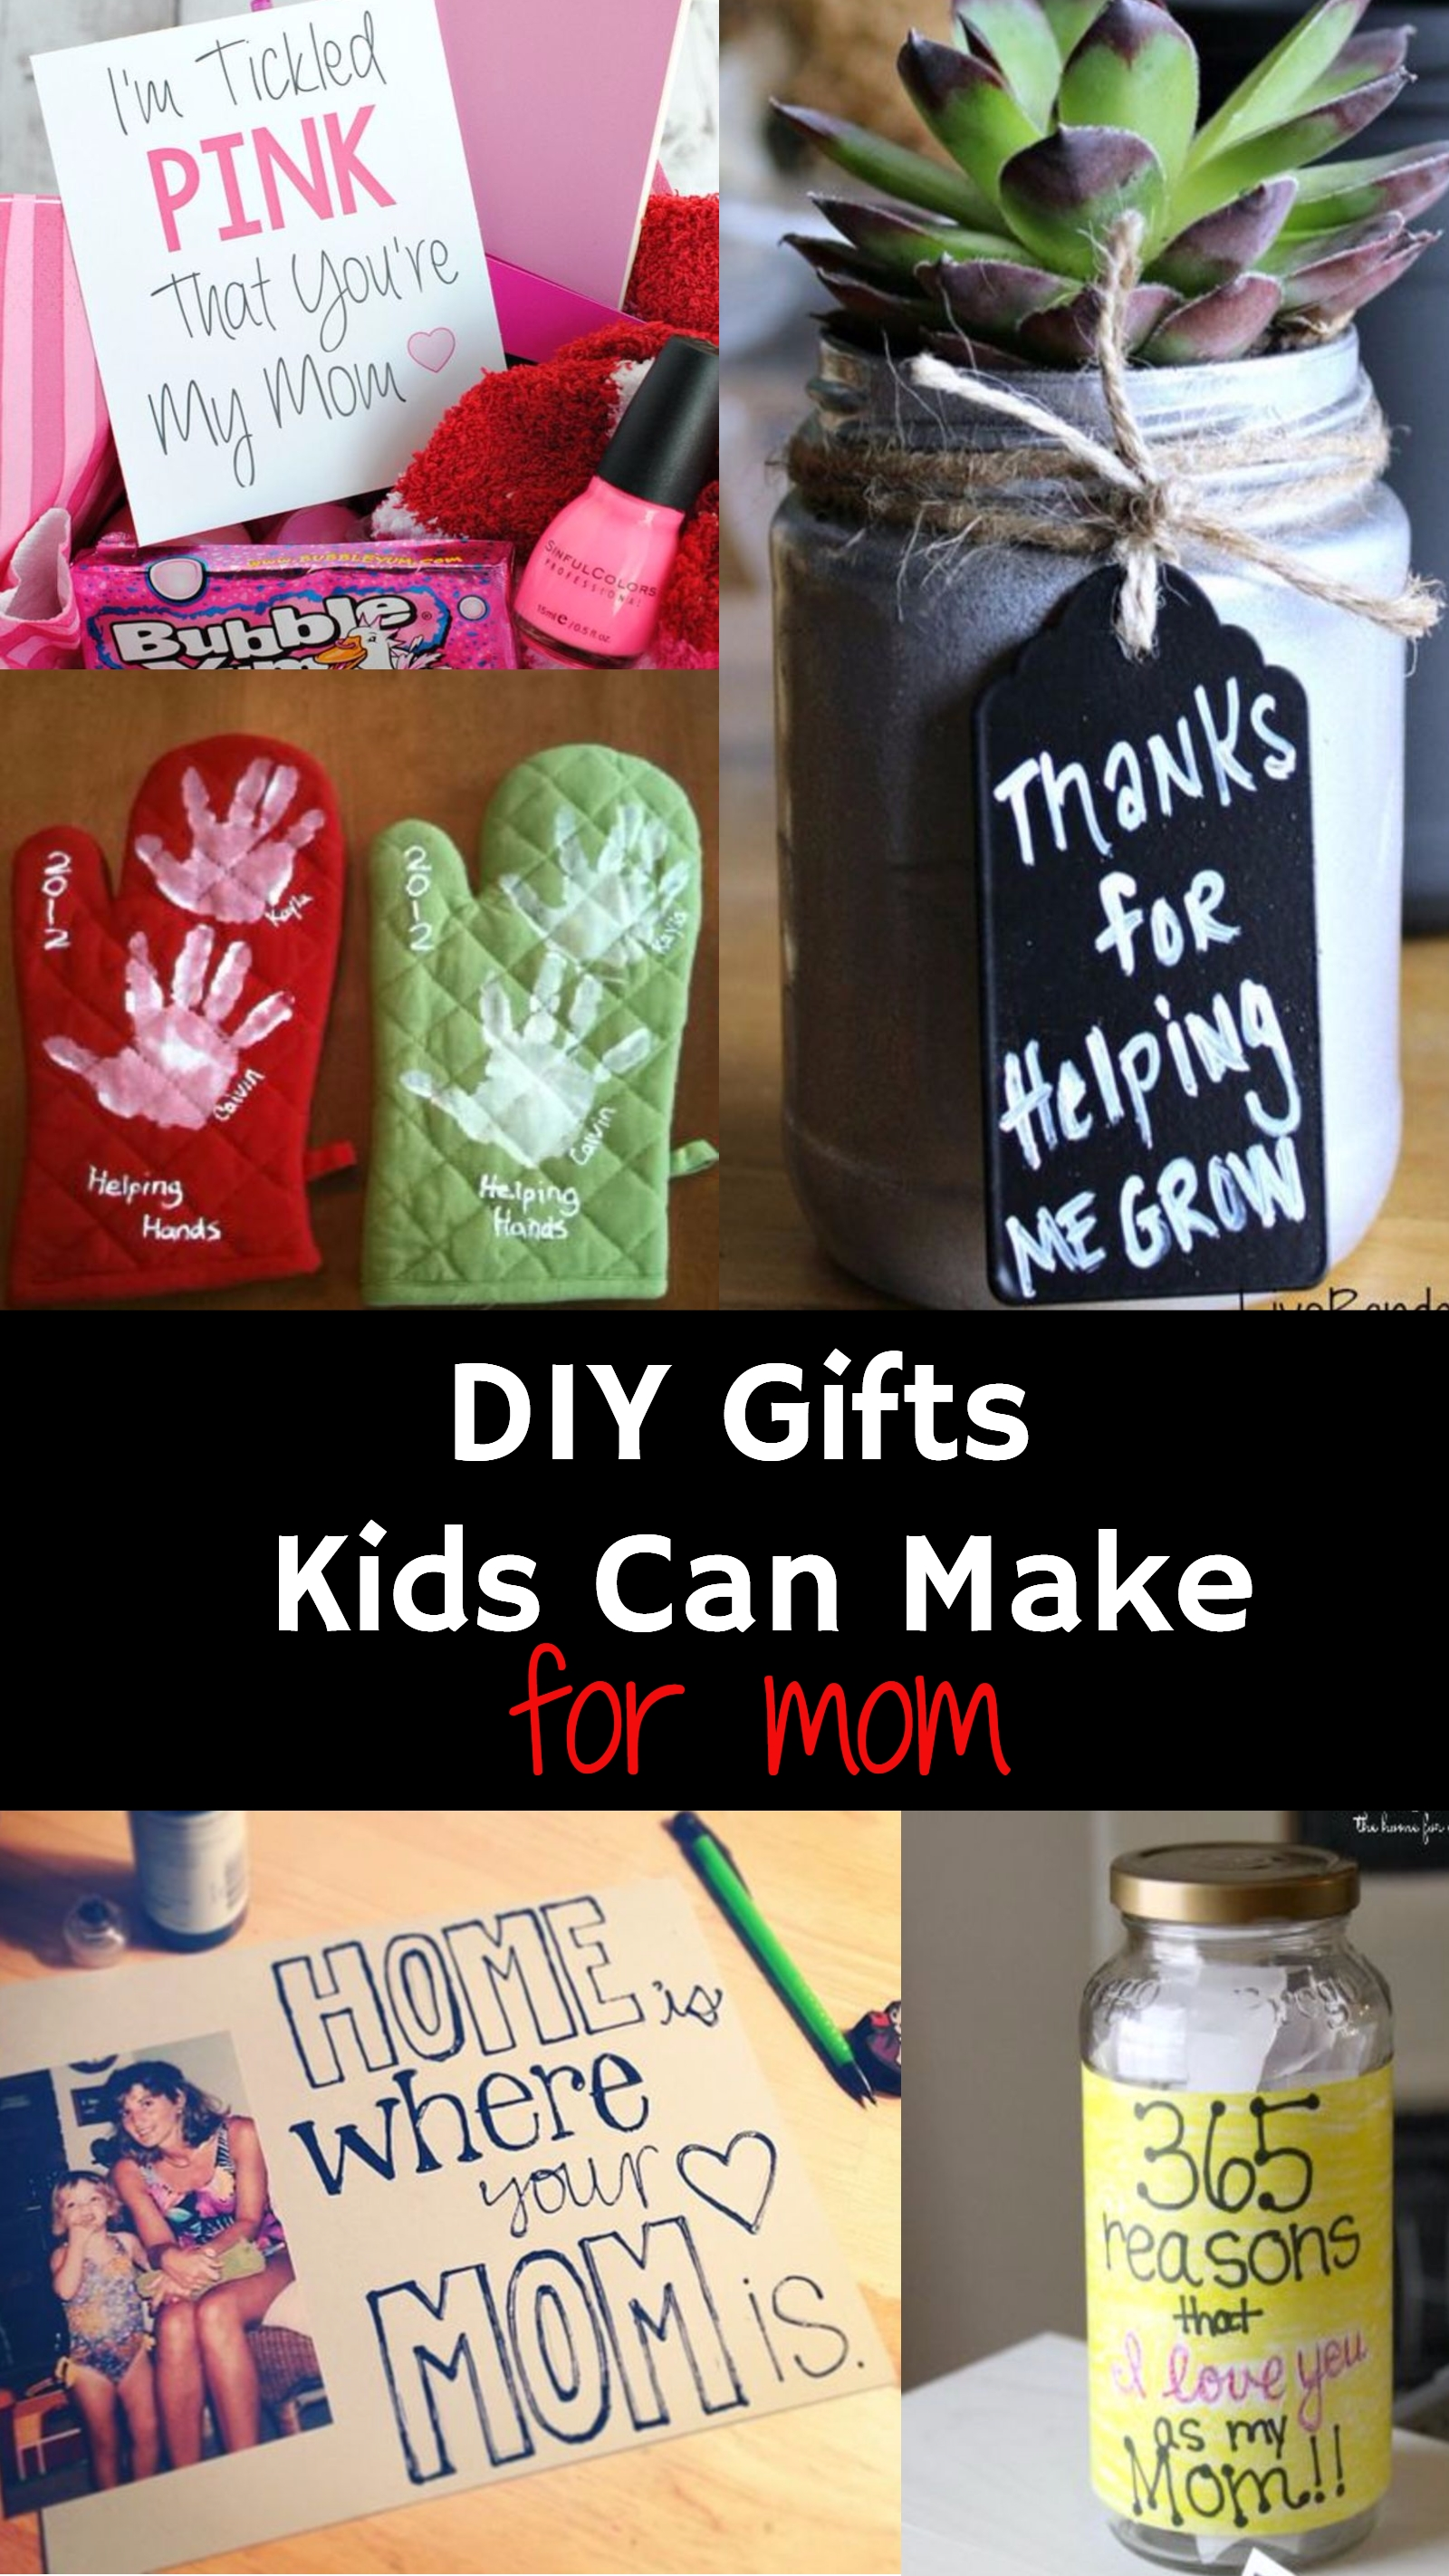 10 Awesome Homemade Birthday Gift Ideas For Mom Diy Gifts From Kids Grandmothers Aunt